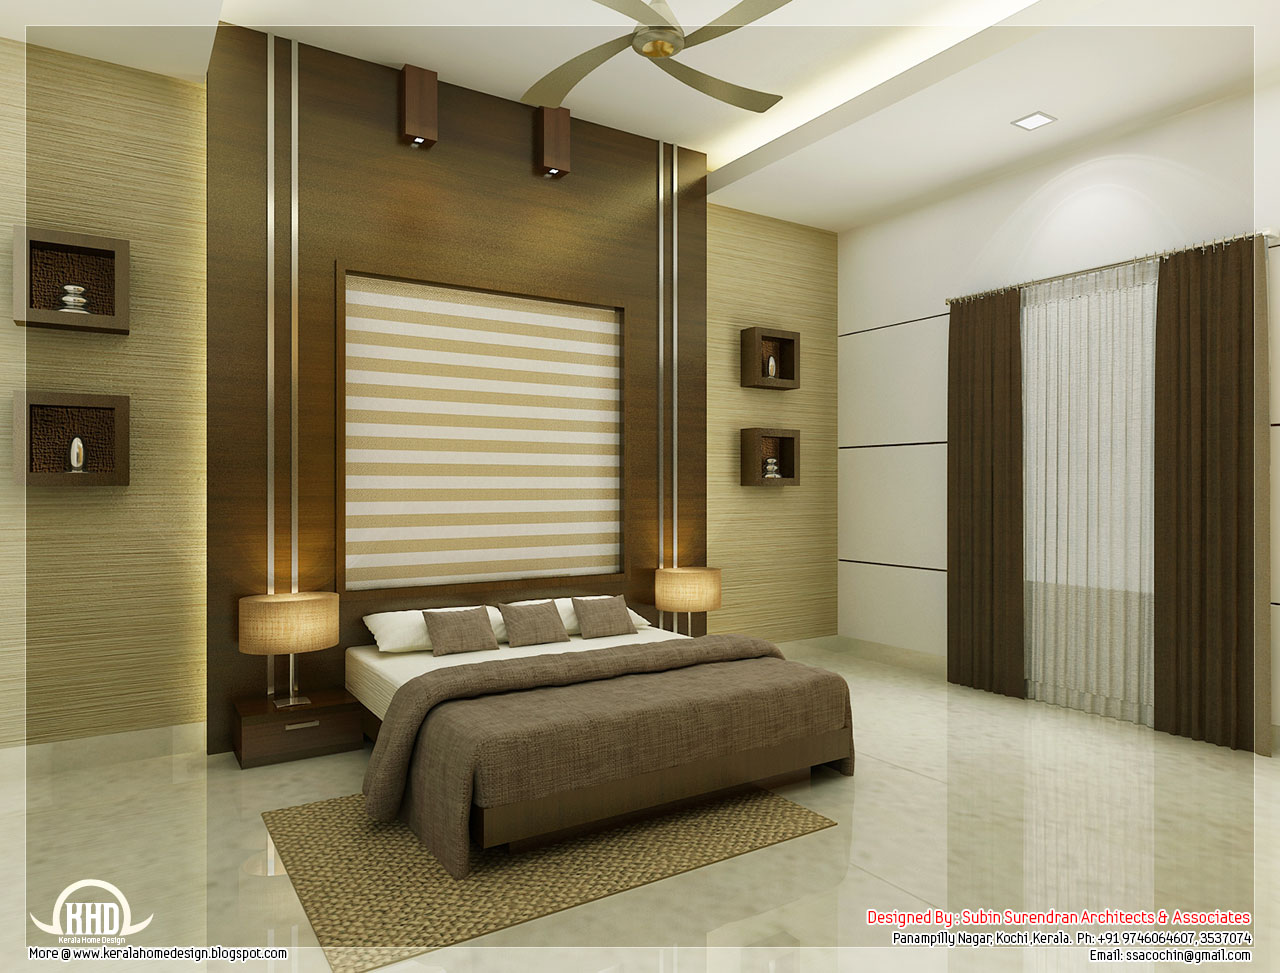 beautiful bedroom interior designs kerala home design ForBedroom Images Interior Designs